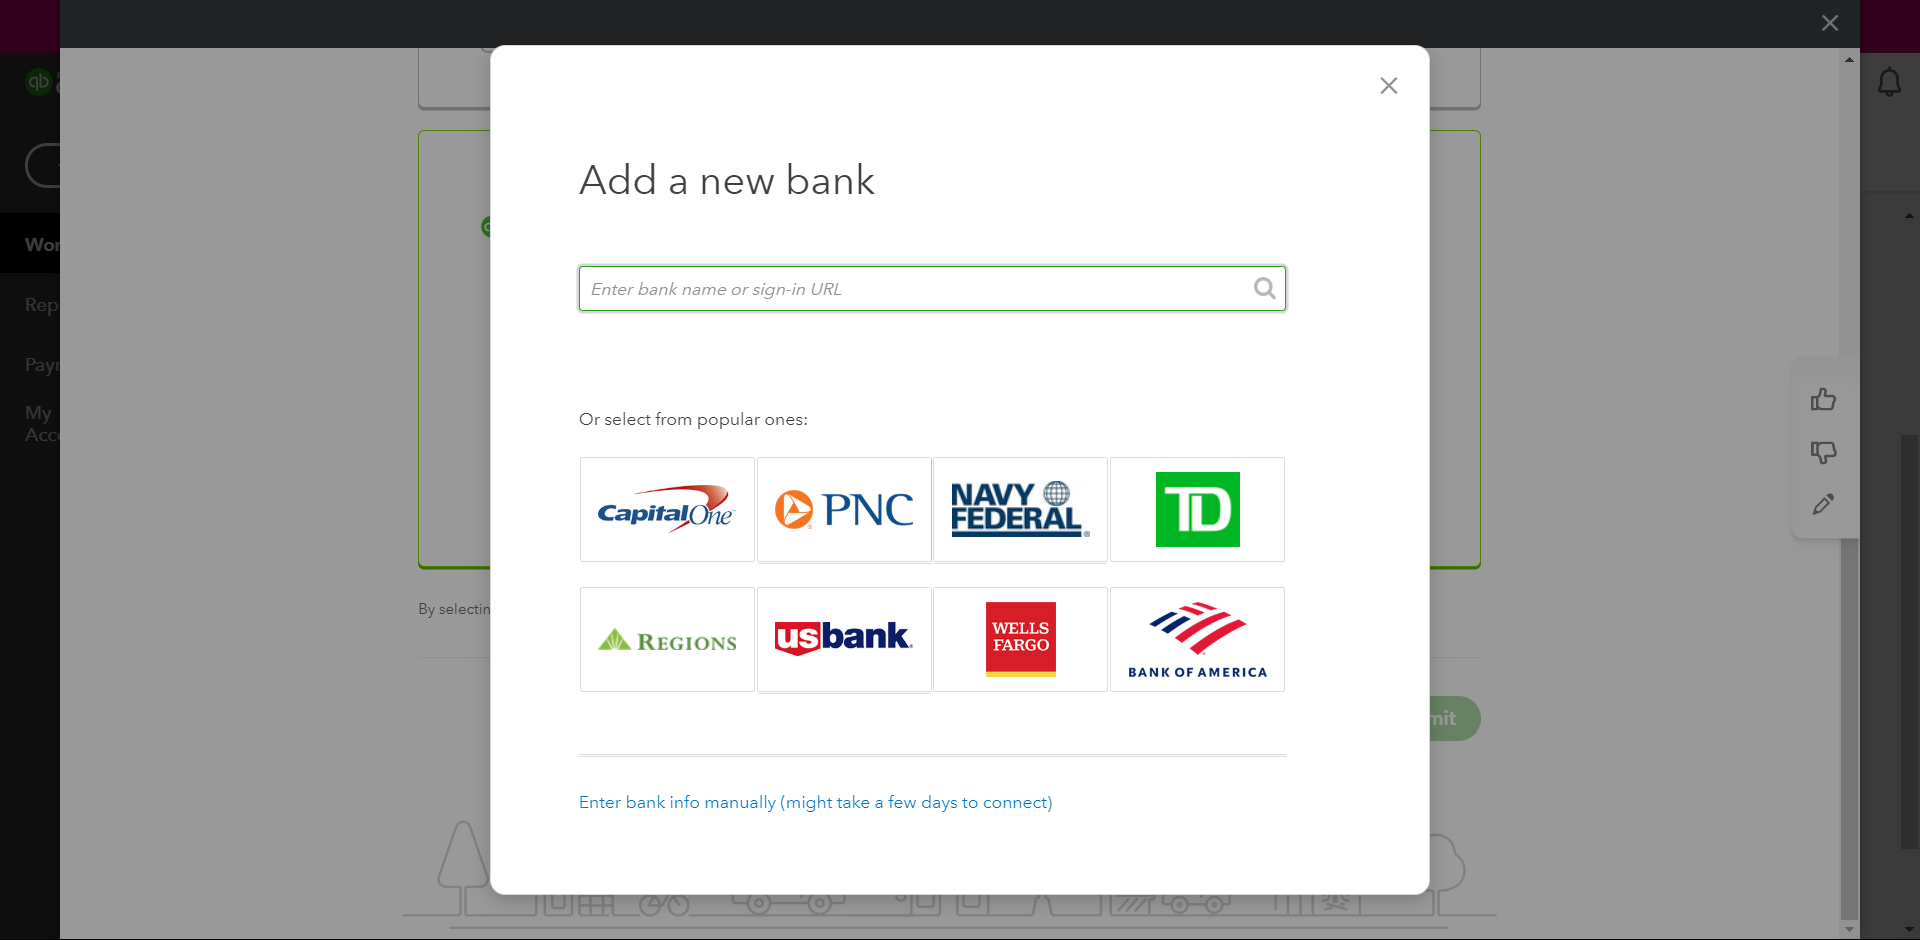 Add a bank feature in QuickBooks Payroll